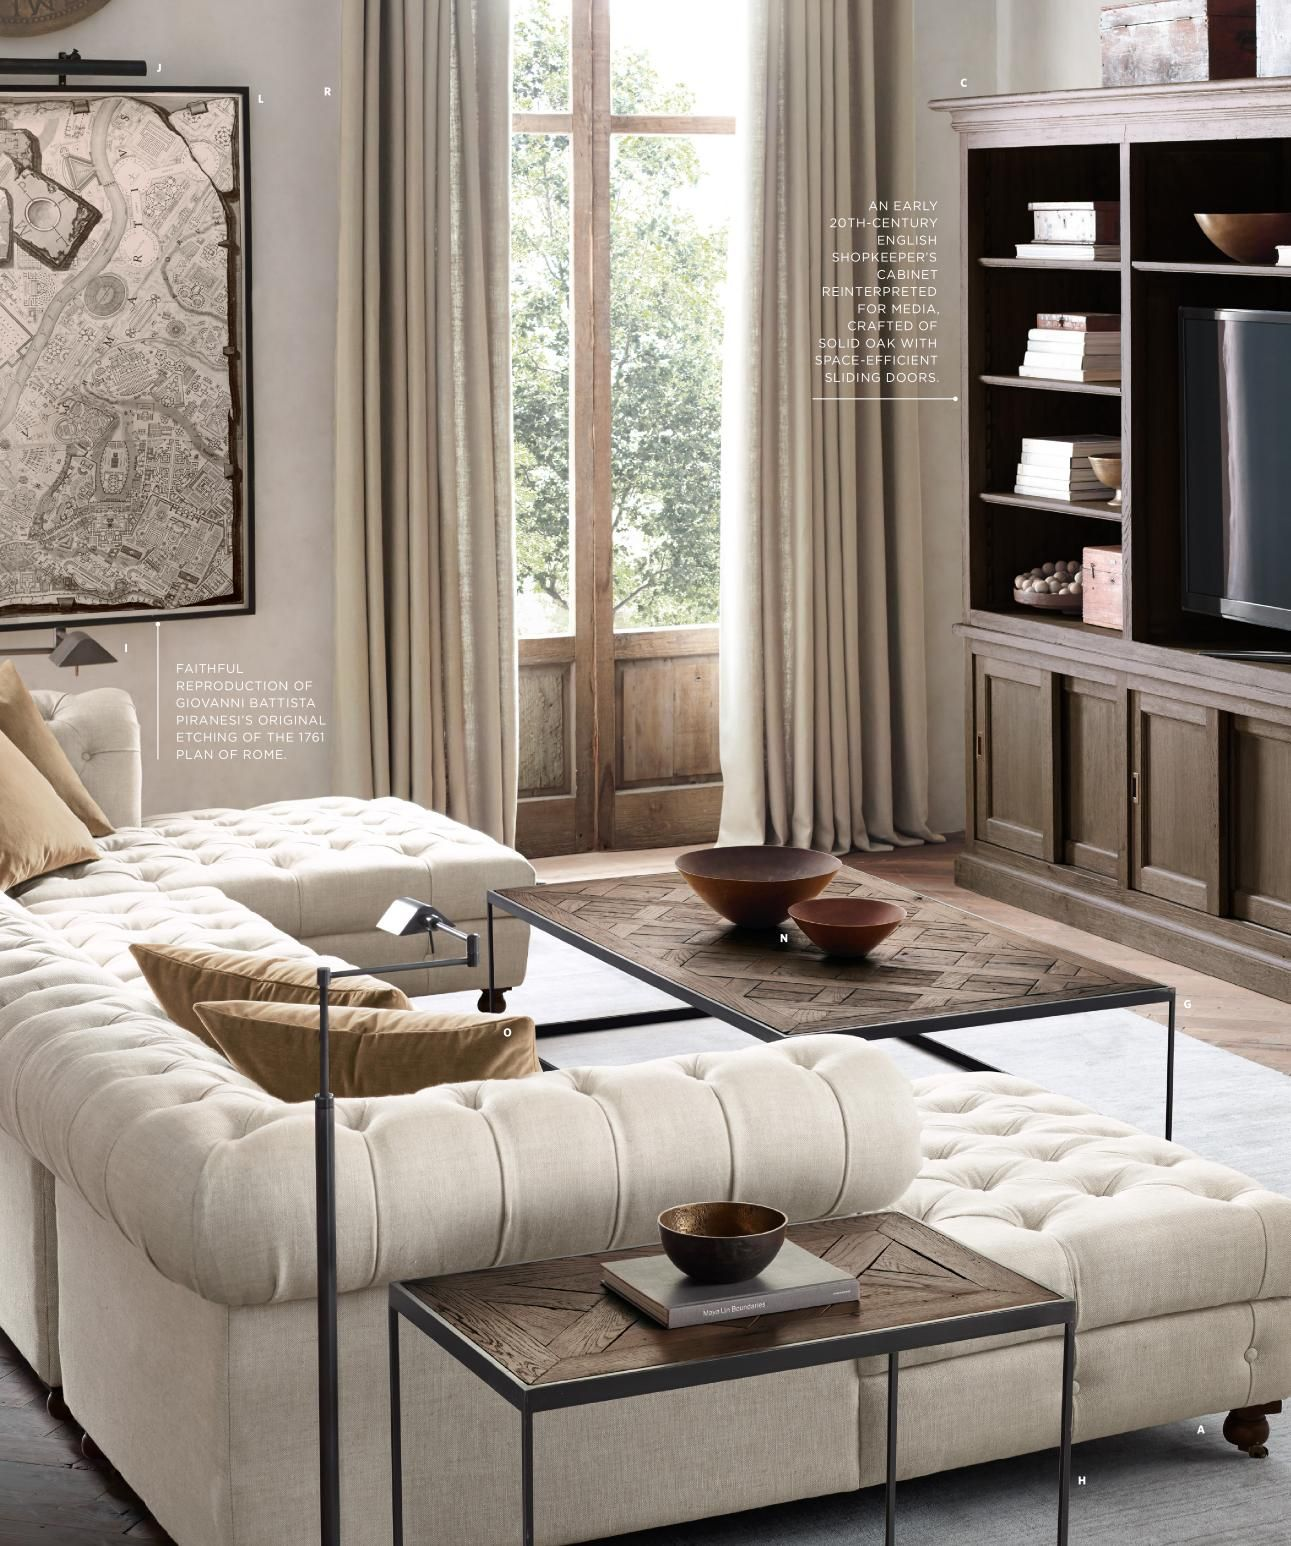 New Home Living Room Designs: Safari Living Rooms, Living Room Nook